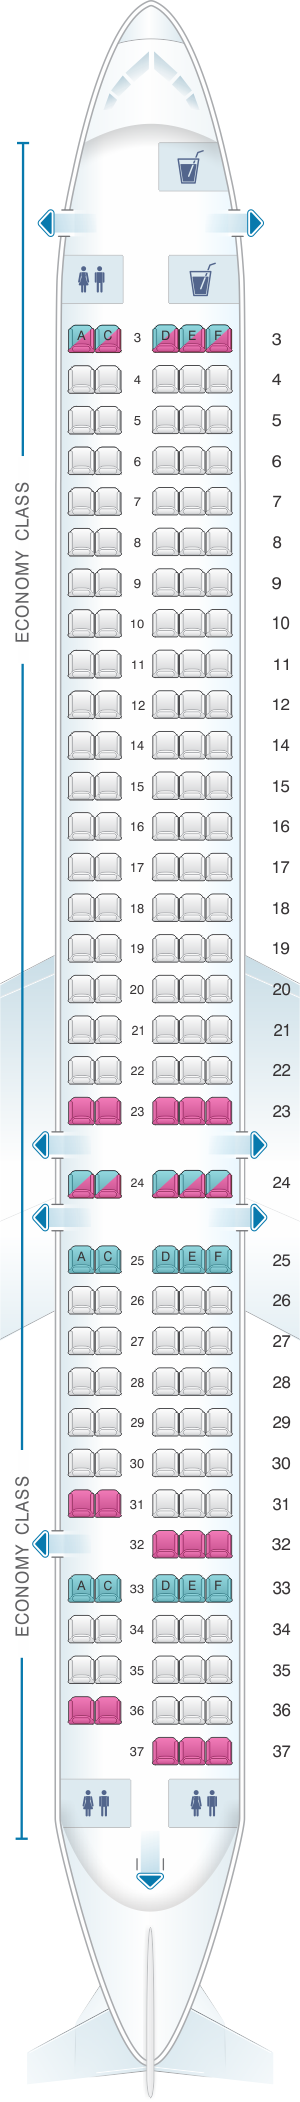 Seat map for Allegiant Air McDonnell Douglas MD 80